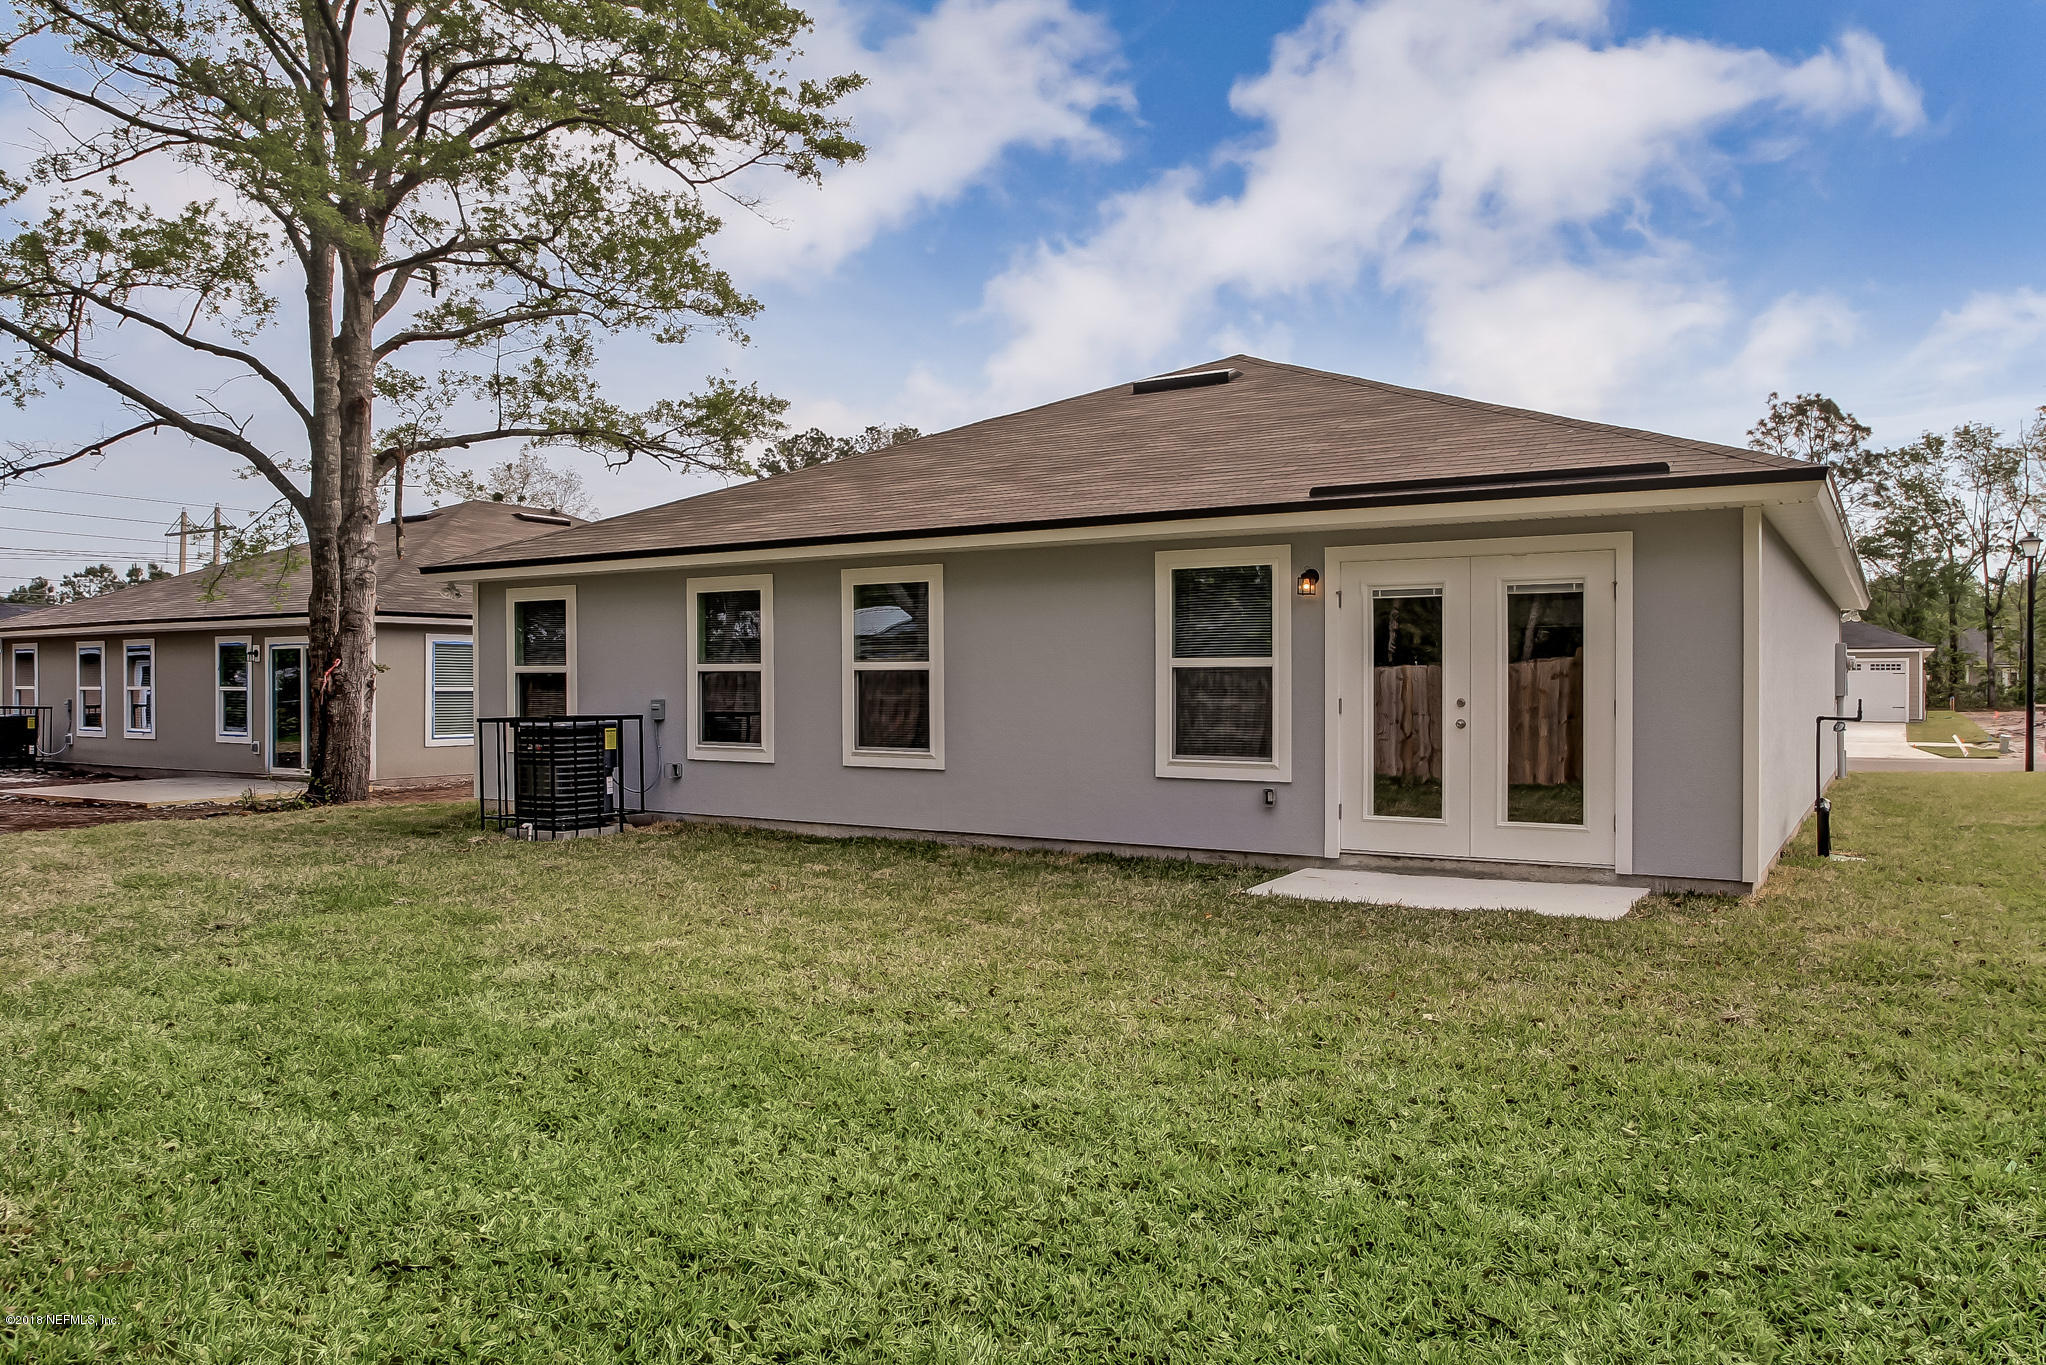 8031 STUART, JACKSONVILLE, FLORIDA 32220, 3 Bedrooms Bedrooms, ,2 BathroomsBathrooms,Residential - single family,For sale,STUART,959250